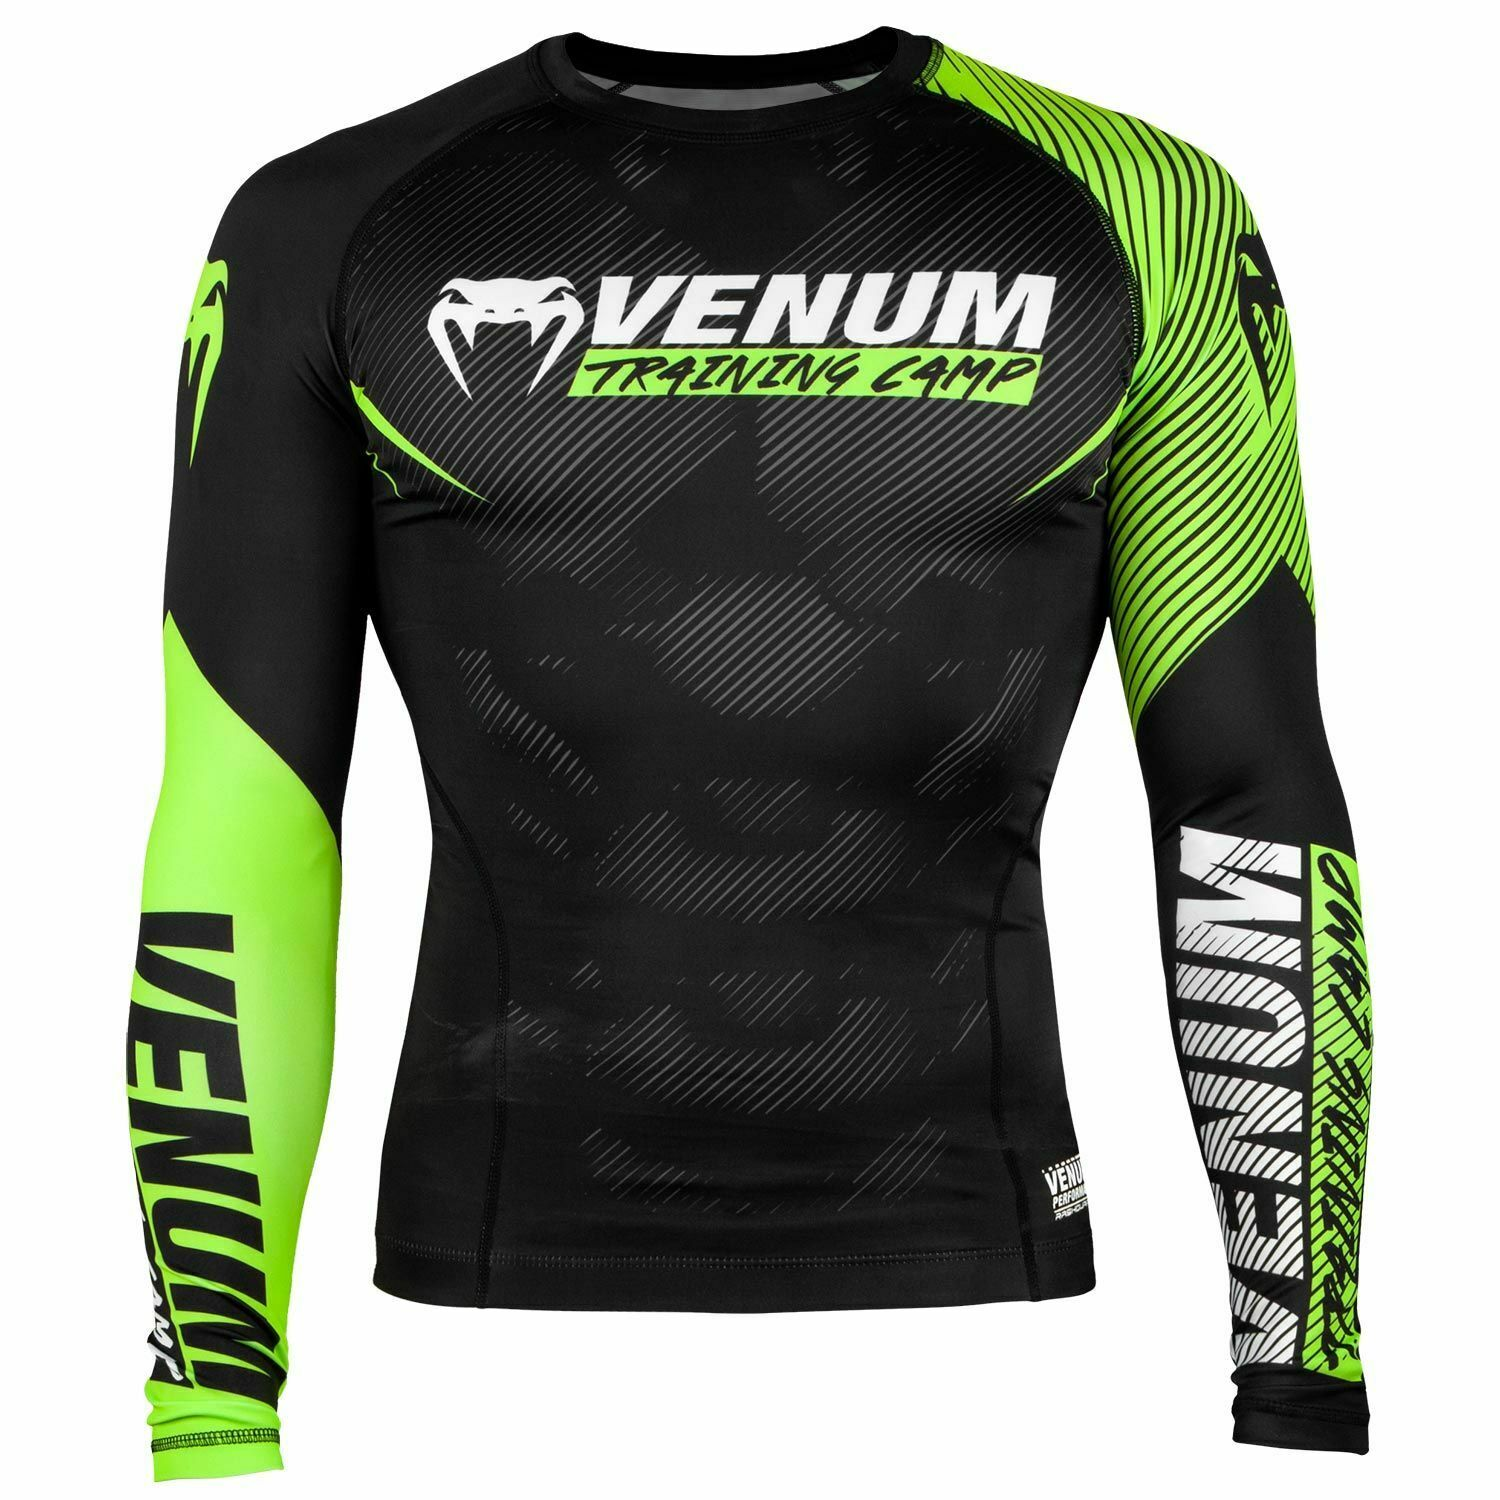 Venum tuttienamento Camp 2.0 Rash Guard uomoica Lunga No Gi Bjj Mma Grappling Jiu